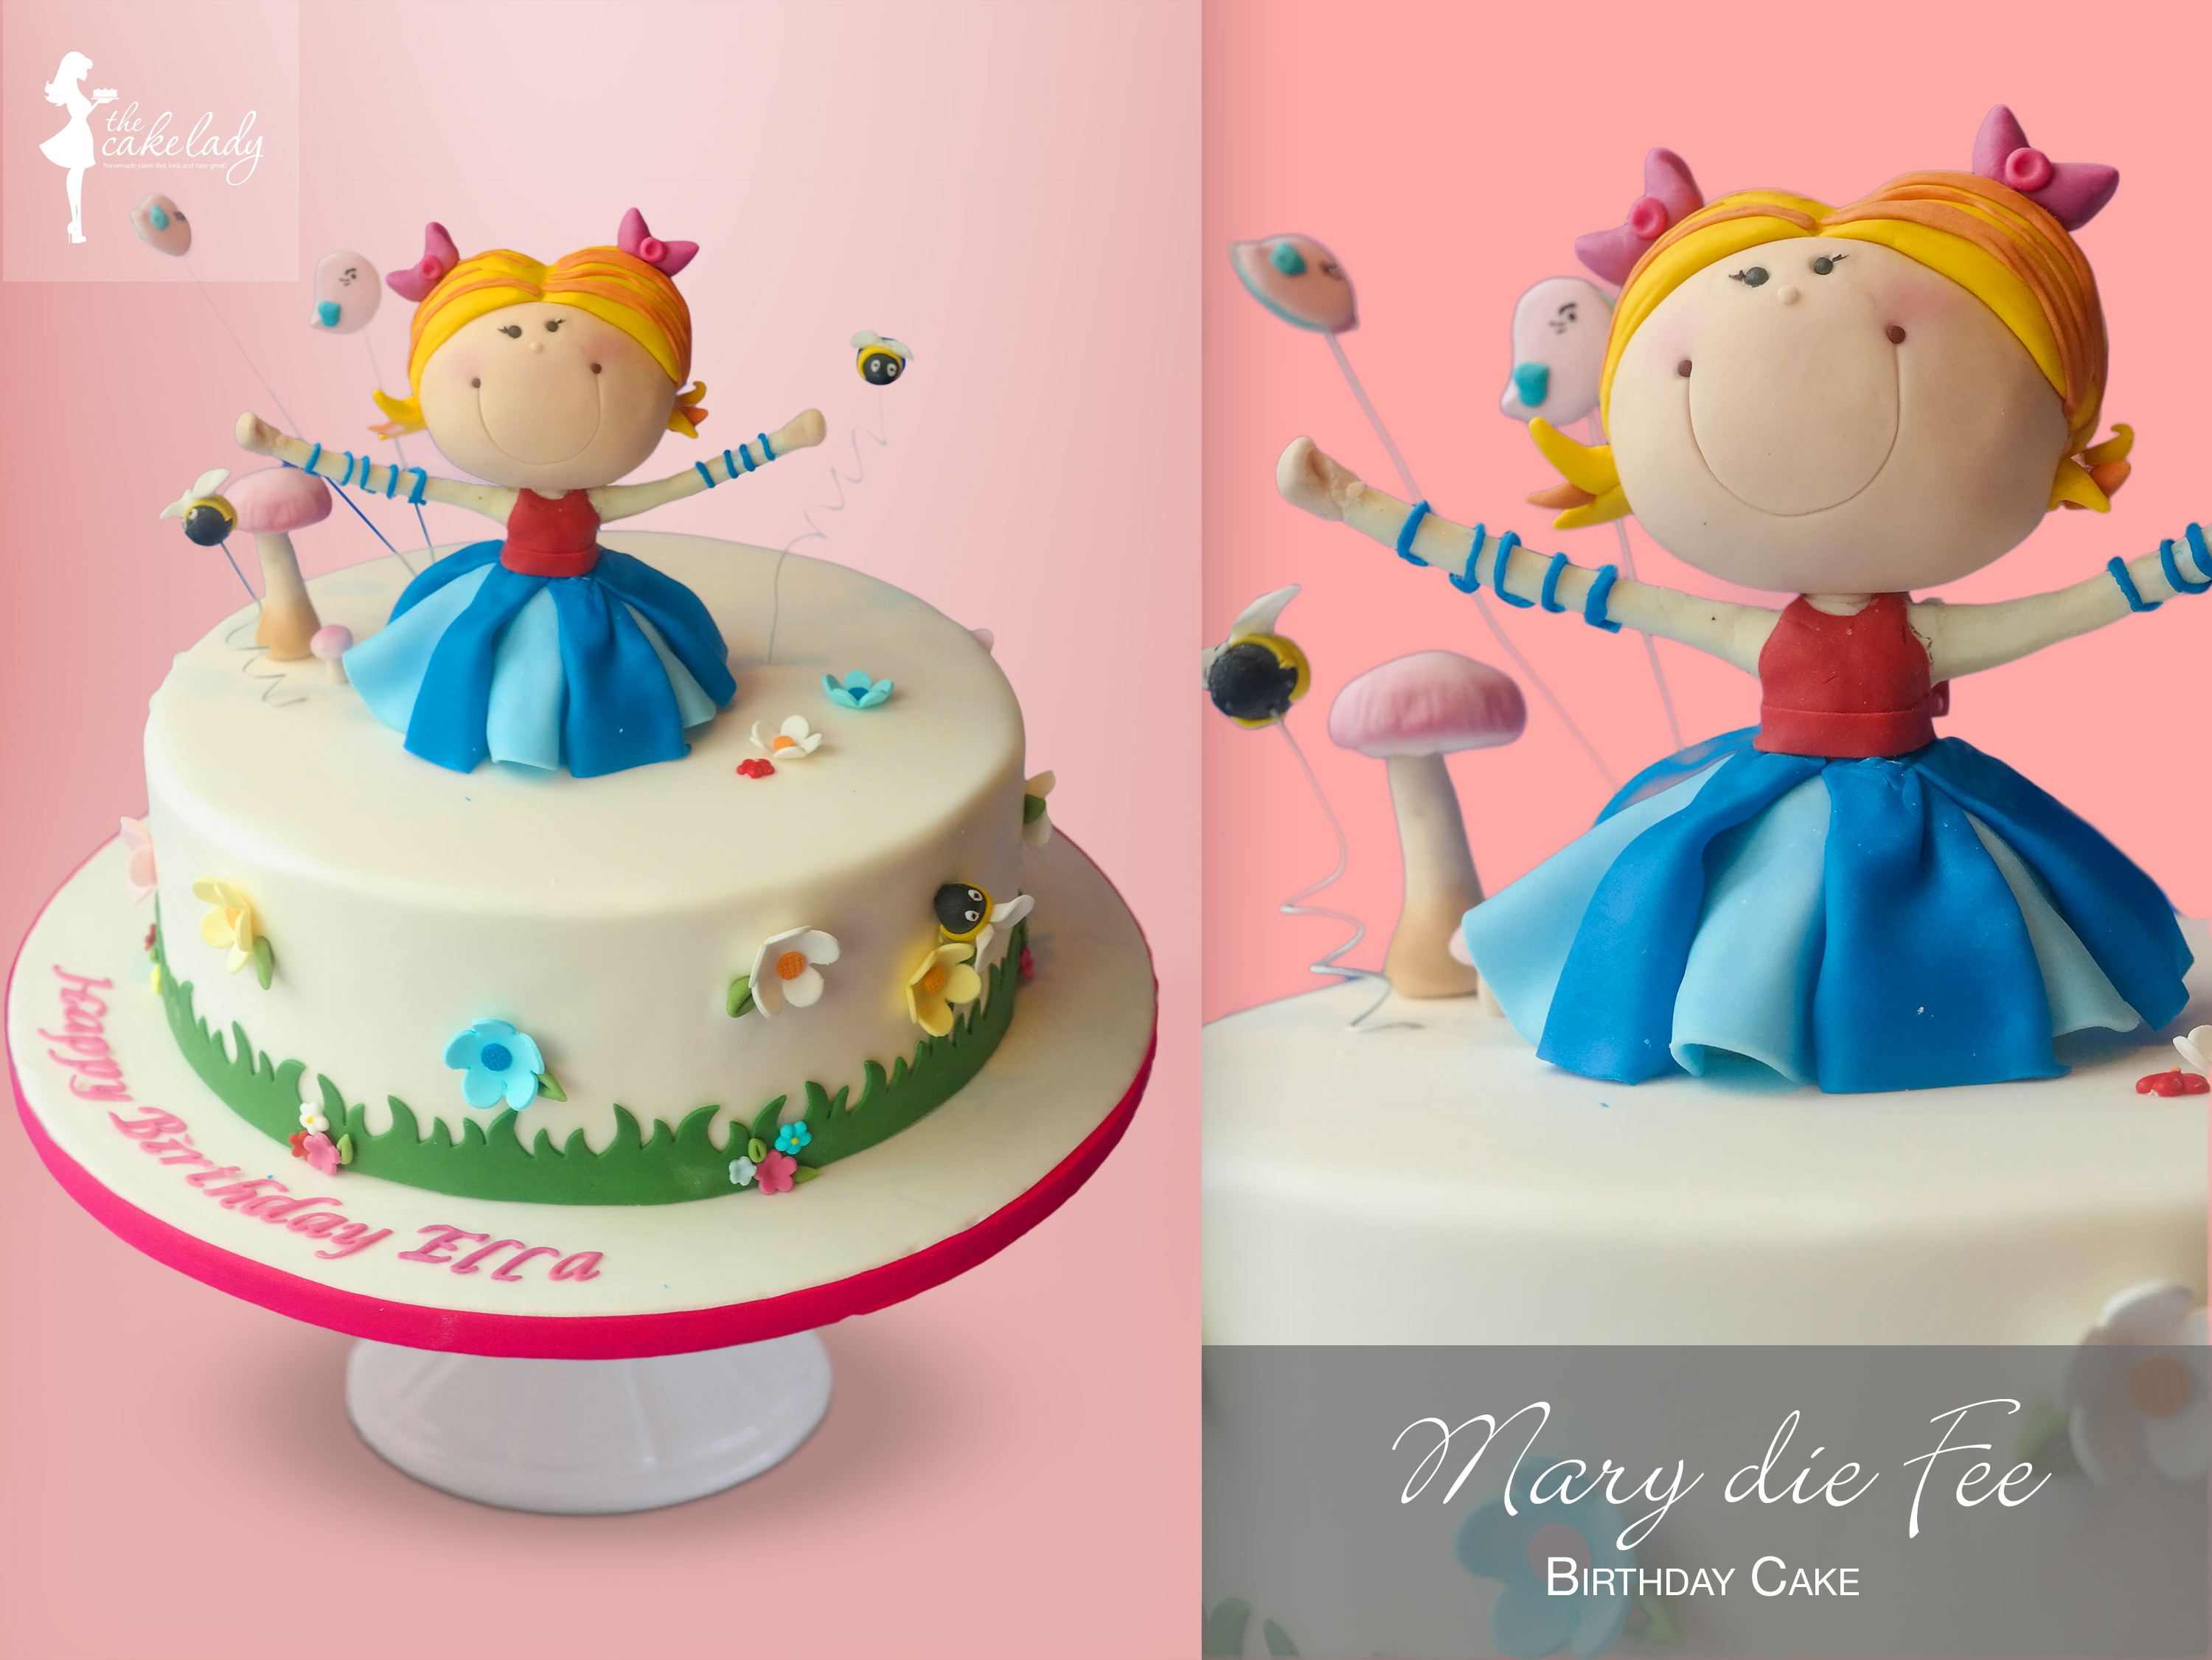 Mary Die Fee I didn't know her before we got this cake request but I love her!